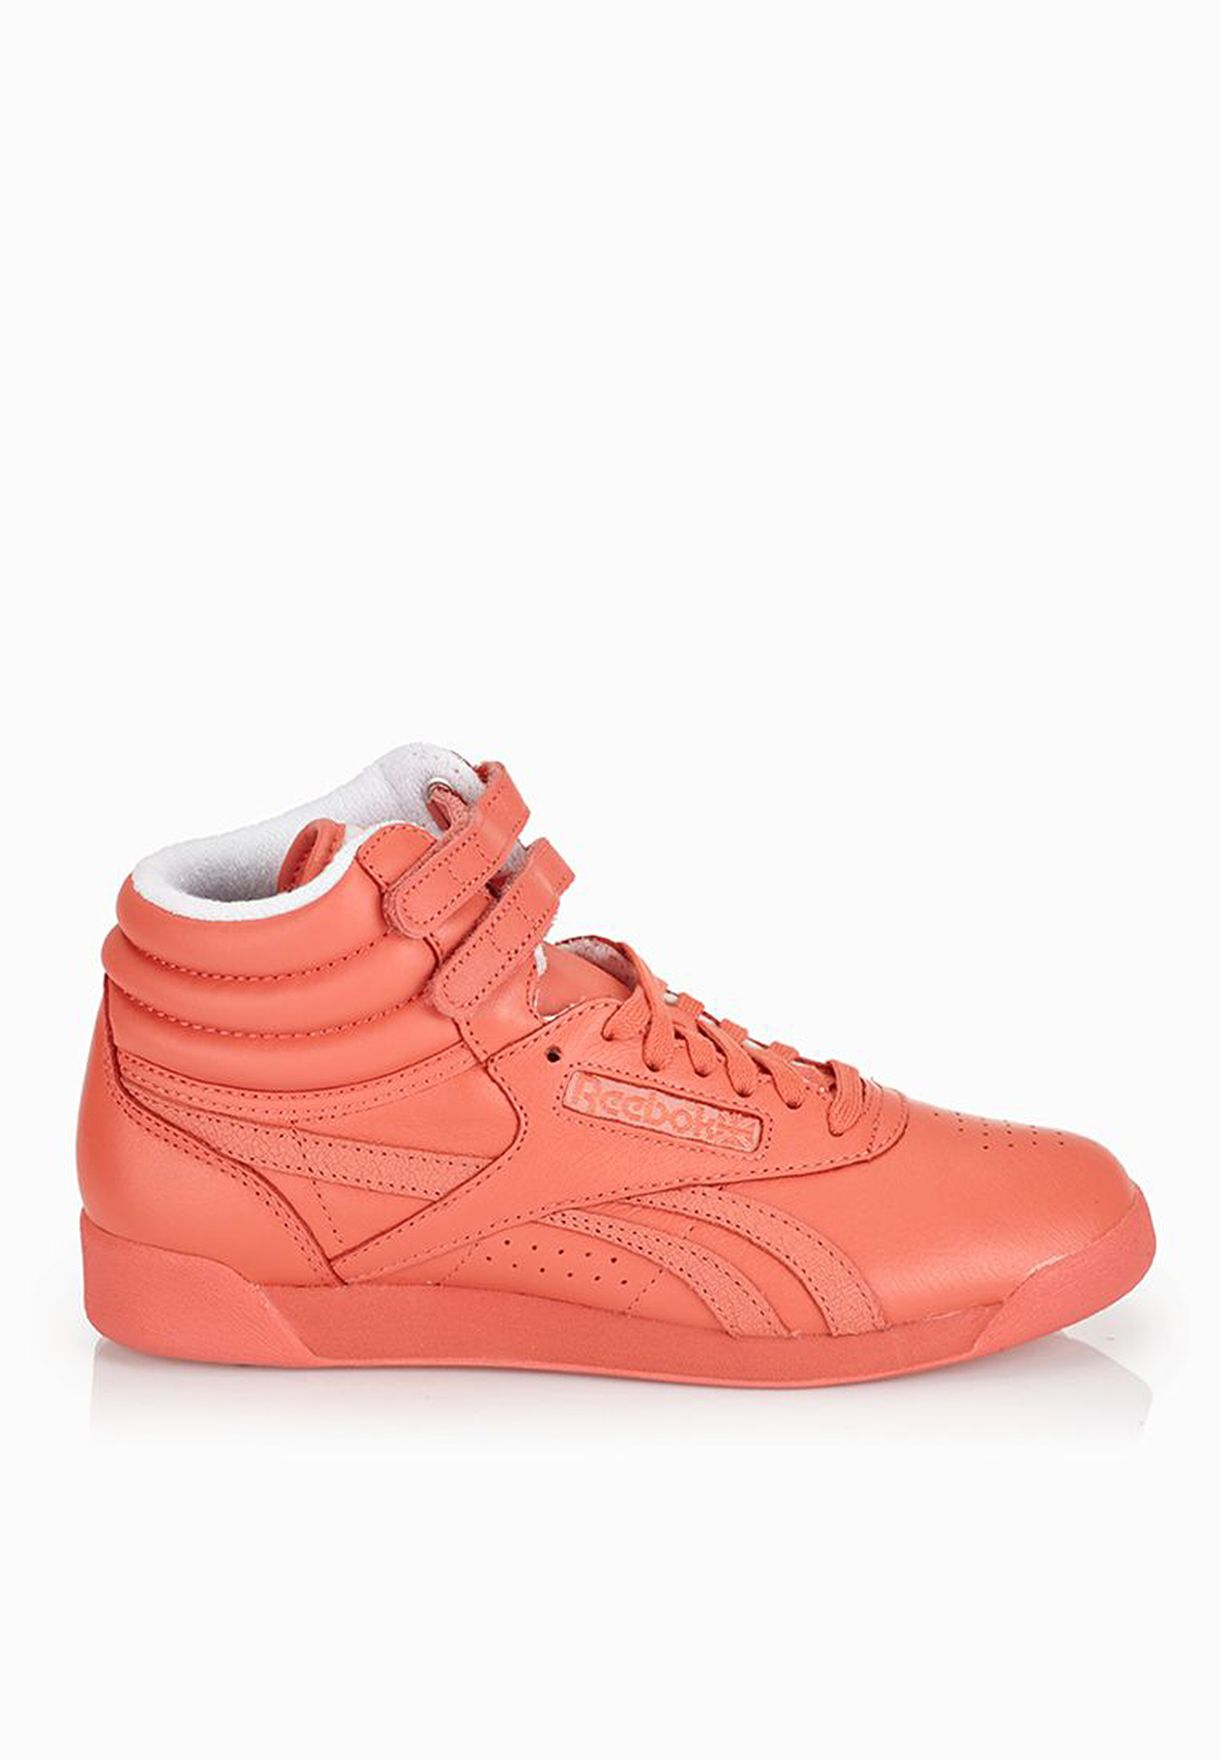 Shop Reebok orange Freestyle Hi Spirit Sneakers V62703 for Women in ... 7e17520fd